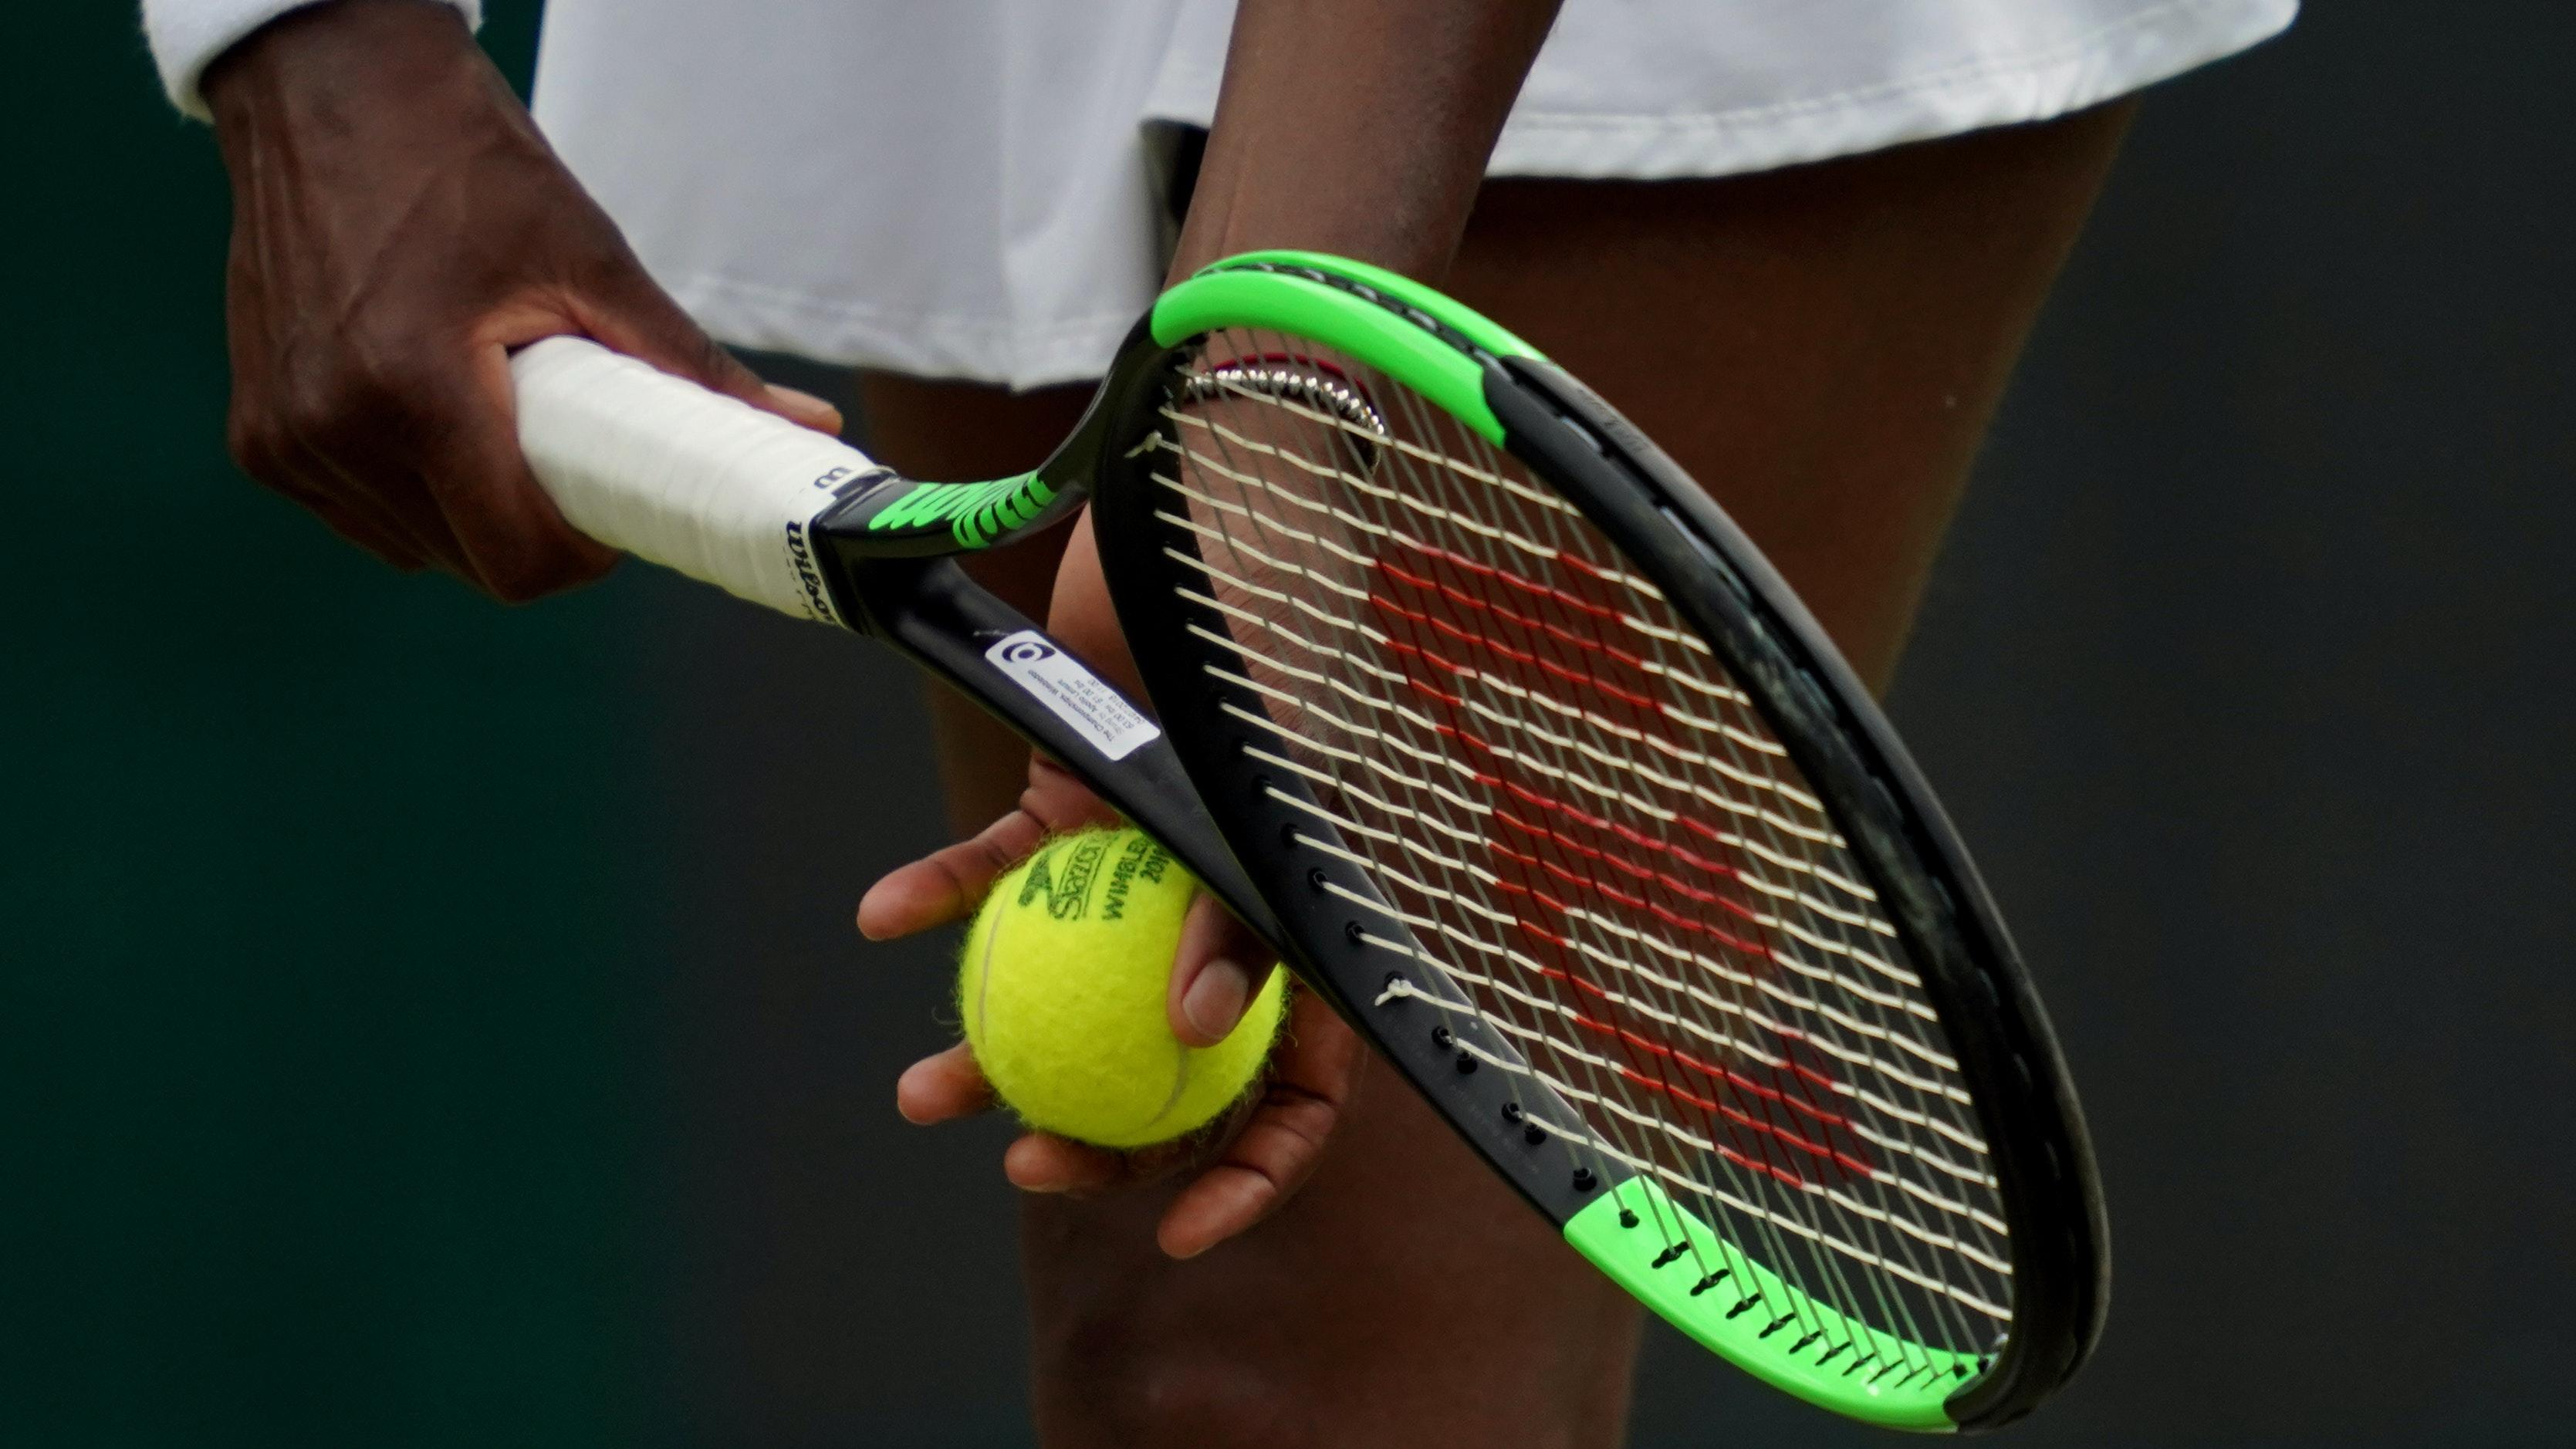 Rescheduled Madrid Open cancelled after spike in coronavirus cases